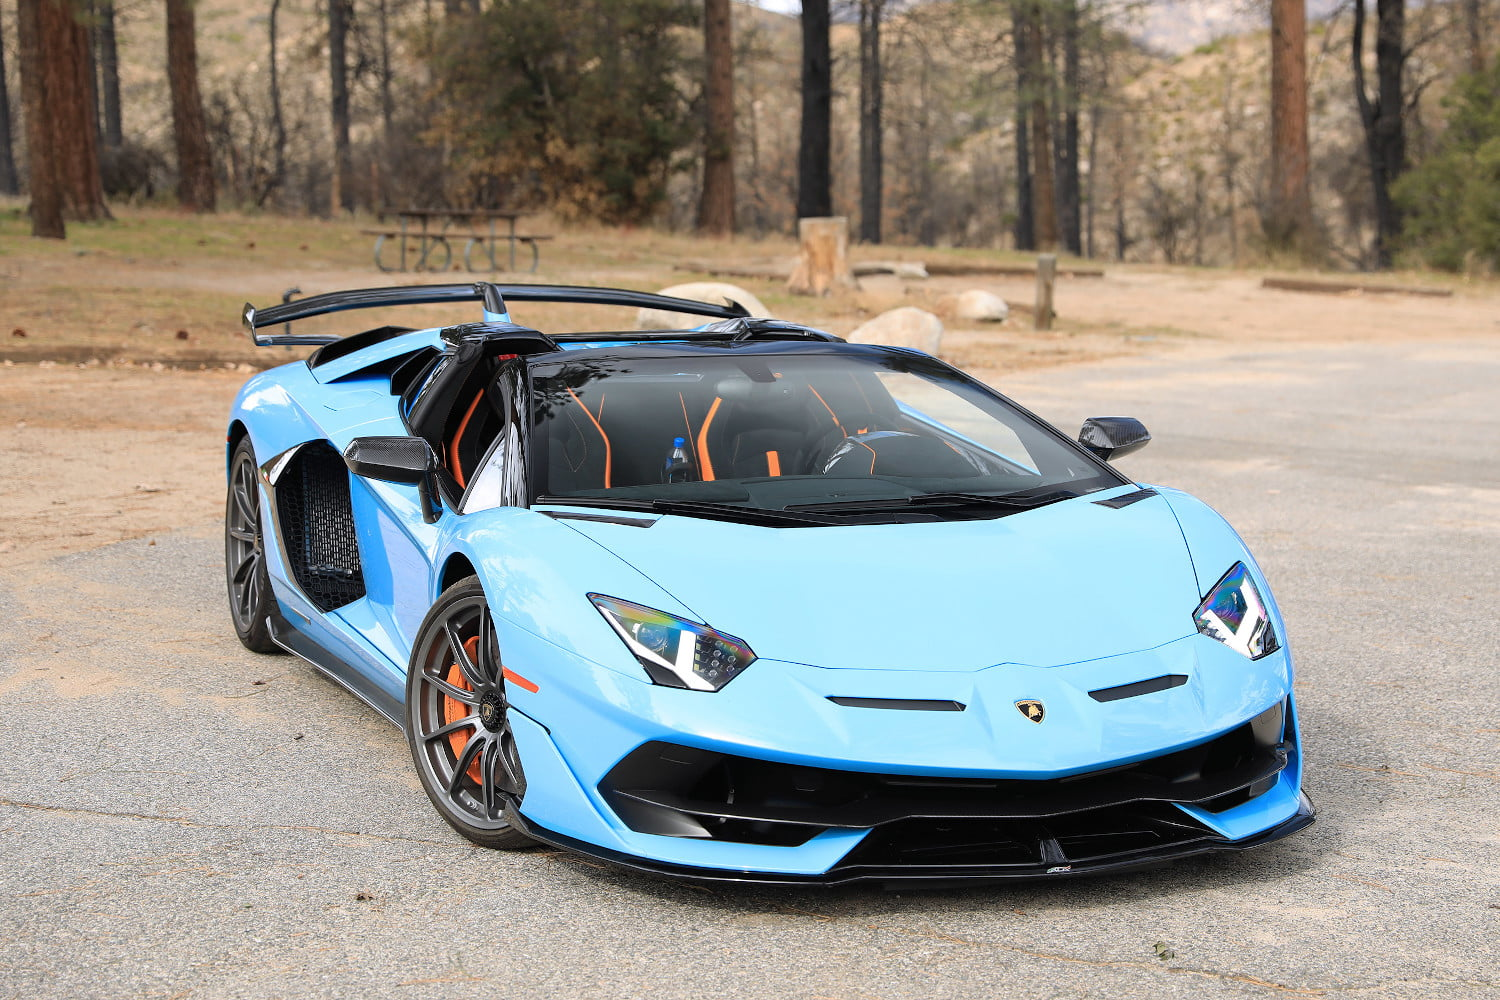 2020 lamborghini aventador svj roadster review listen to that v12 sing digital trends 2020 lamborghini aventador svj roadster